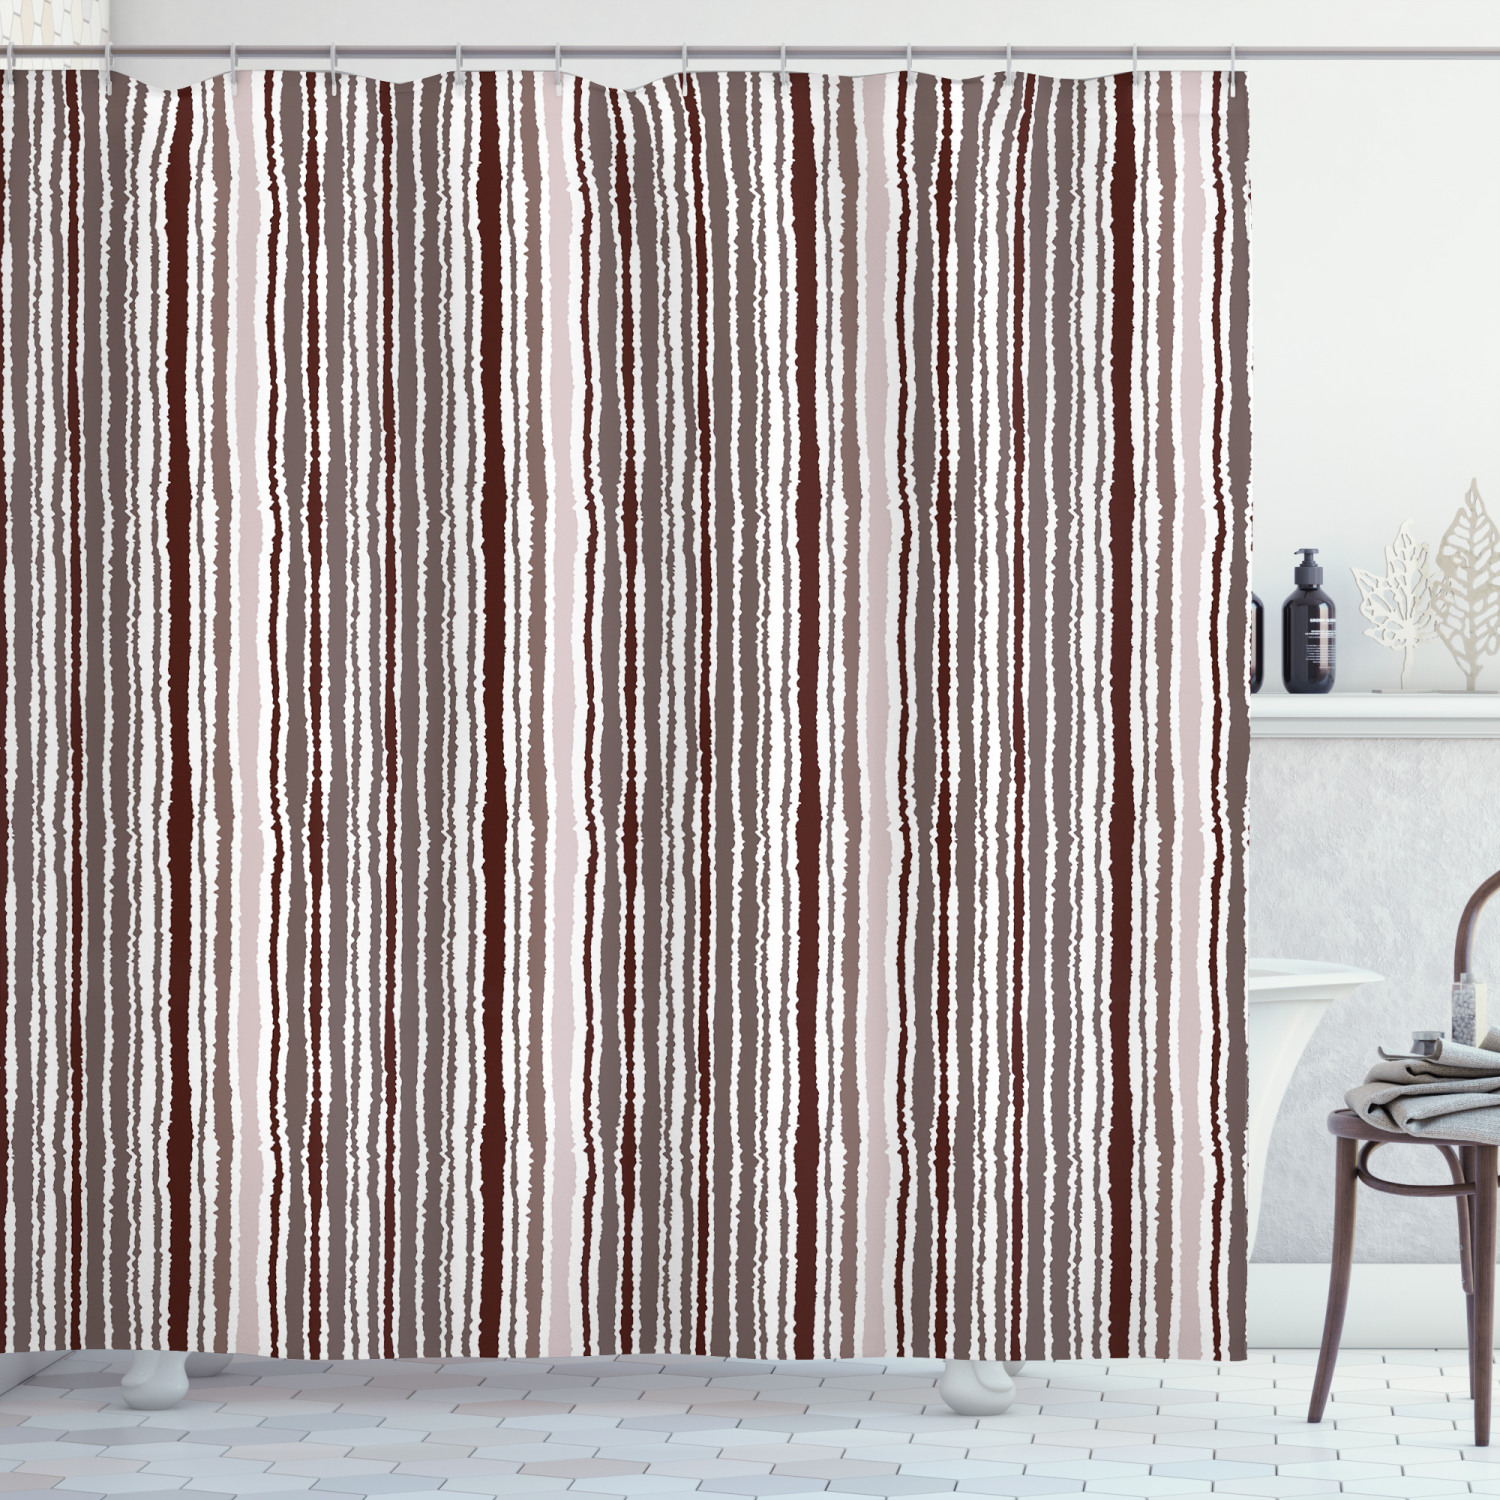 geometric shower curtain vertical lines torn paper style shred edge striped pattern fabric bathroom set with hooks 69w x 84l inches extra long